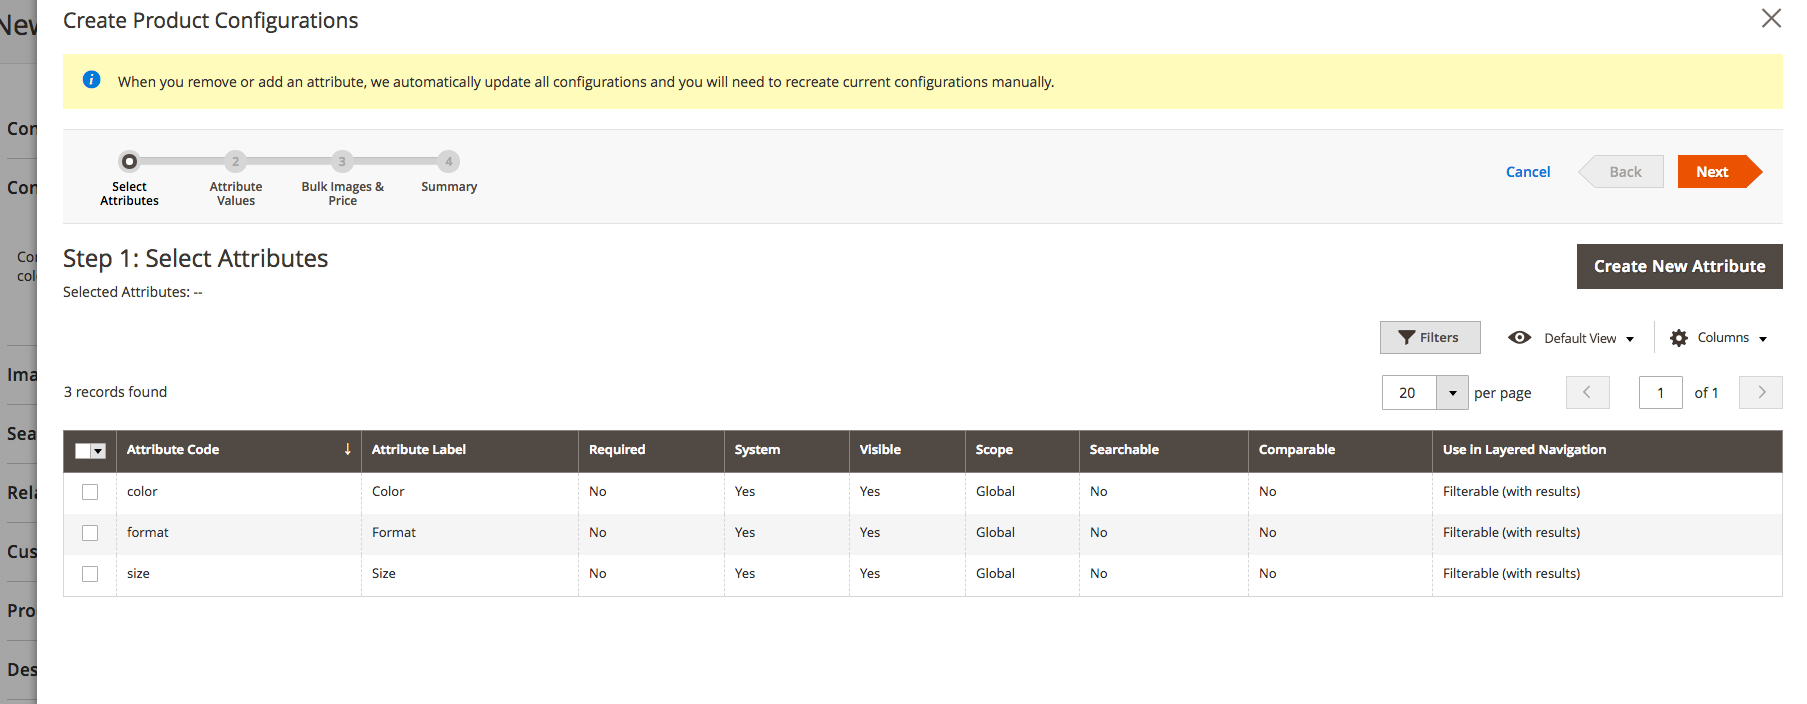 Create Product Configurations